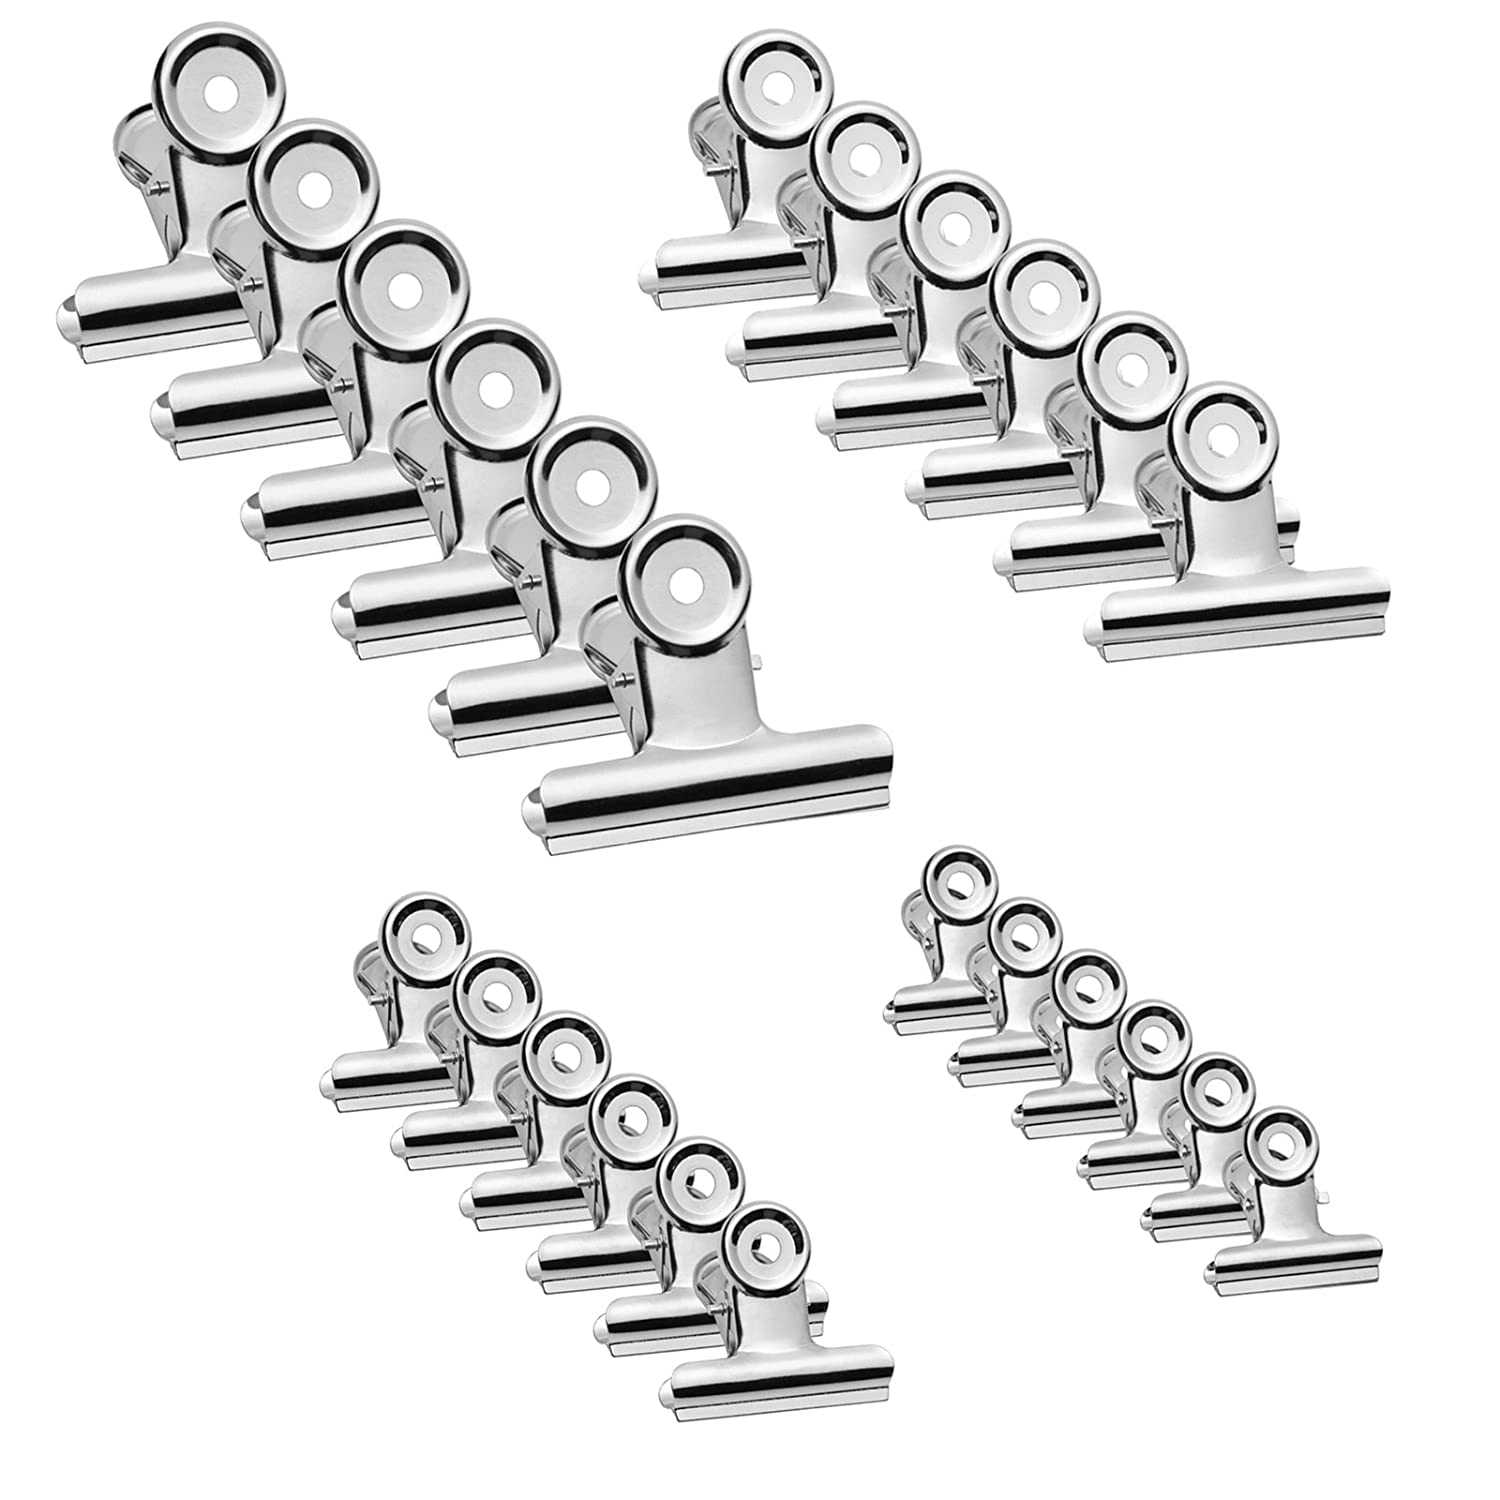 Gydandir 24 Pieces Heavy Duty Stainless Steel Clips for Pictures, Photos, Money, Files Organizing, Food Bag Sealing, Home Kitchen Office School Supplies Useage (4 Sizes)